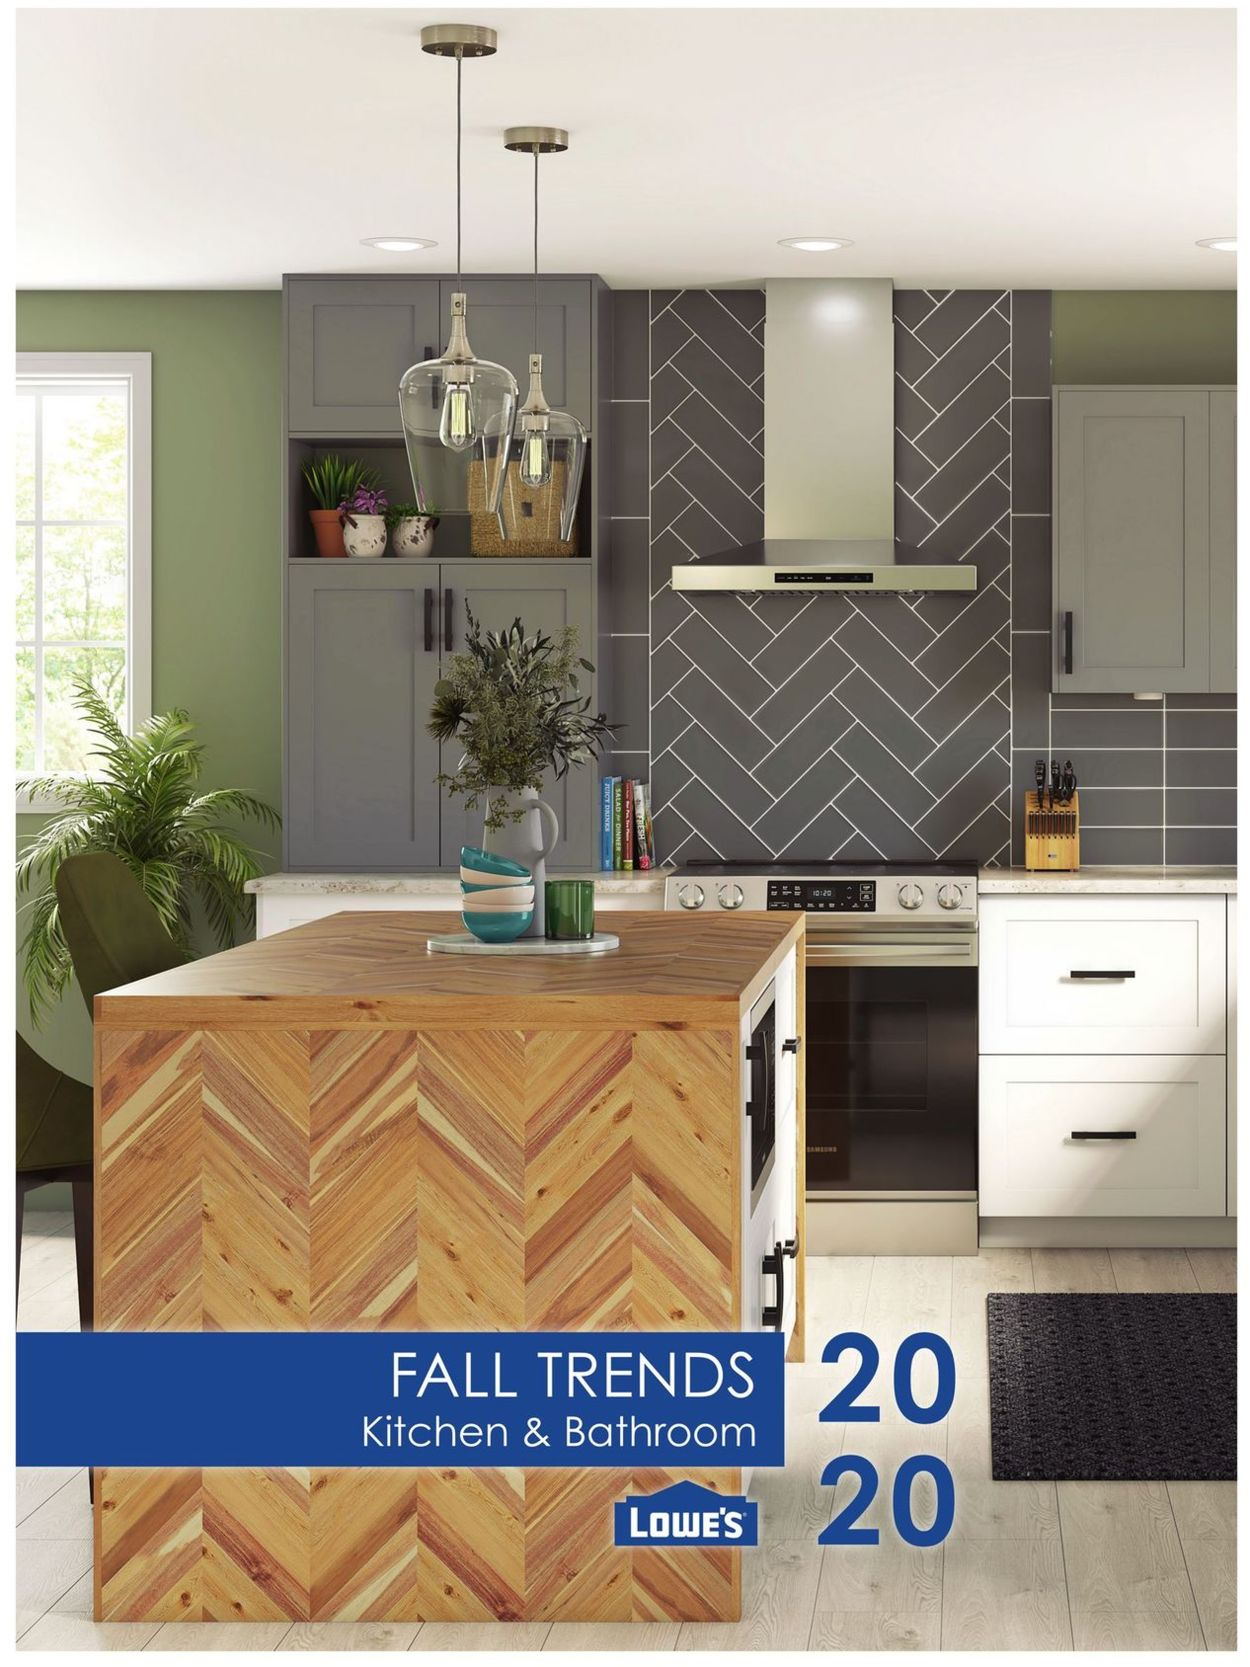 Lowes Flyer - 10/15-11/25/2020